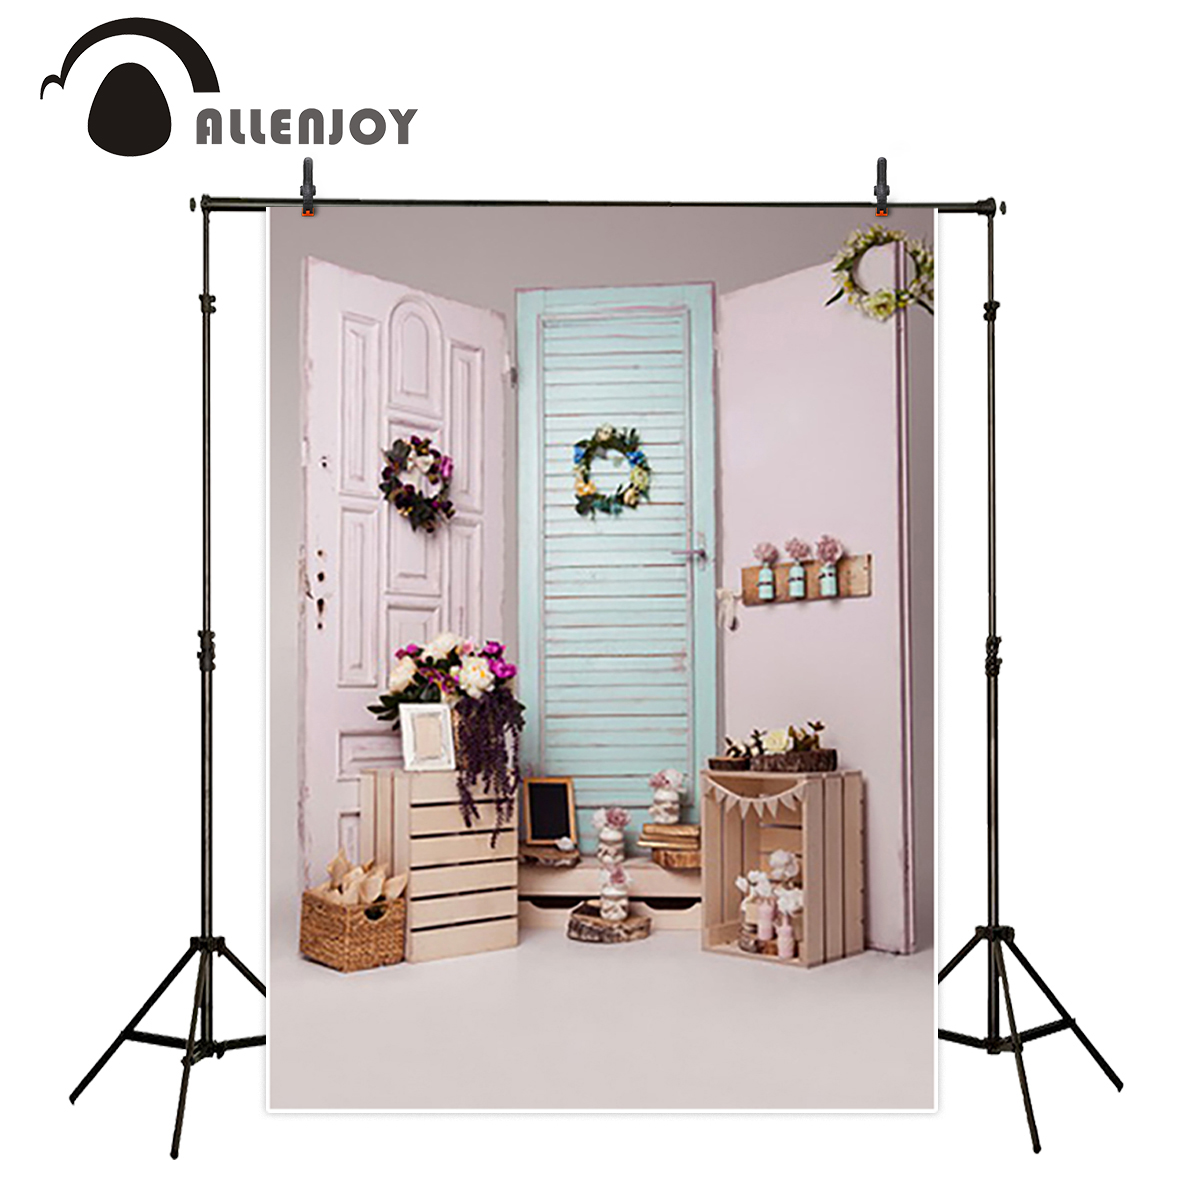 Allenjoy vinyl backdrops for photography backdrop Pink door Garland Girl personally customize children Background for Studio